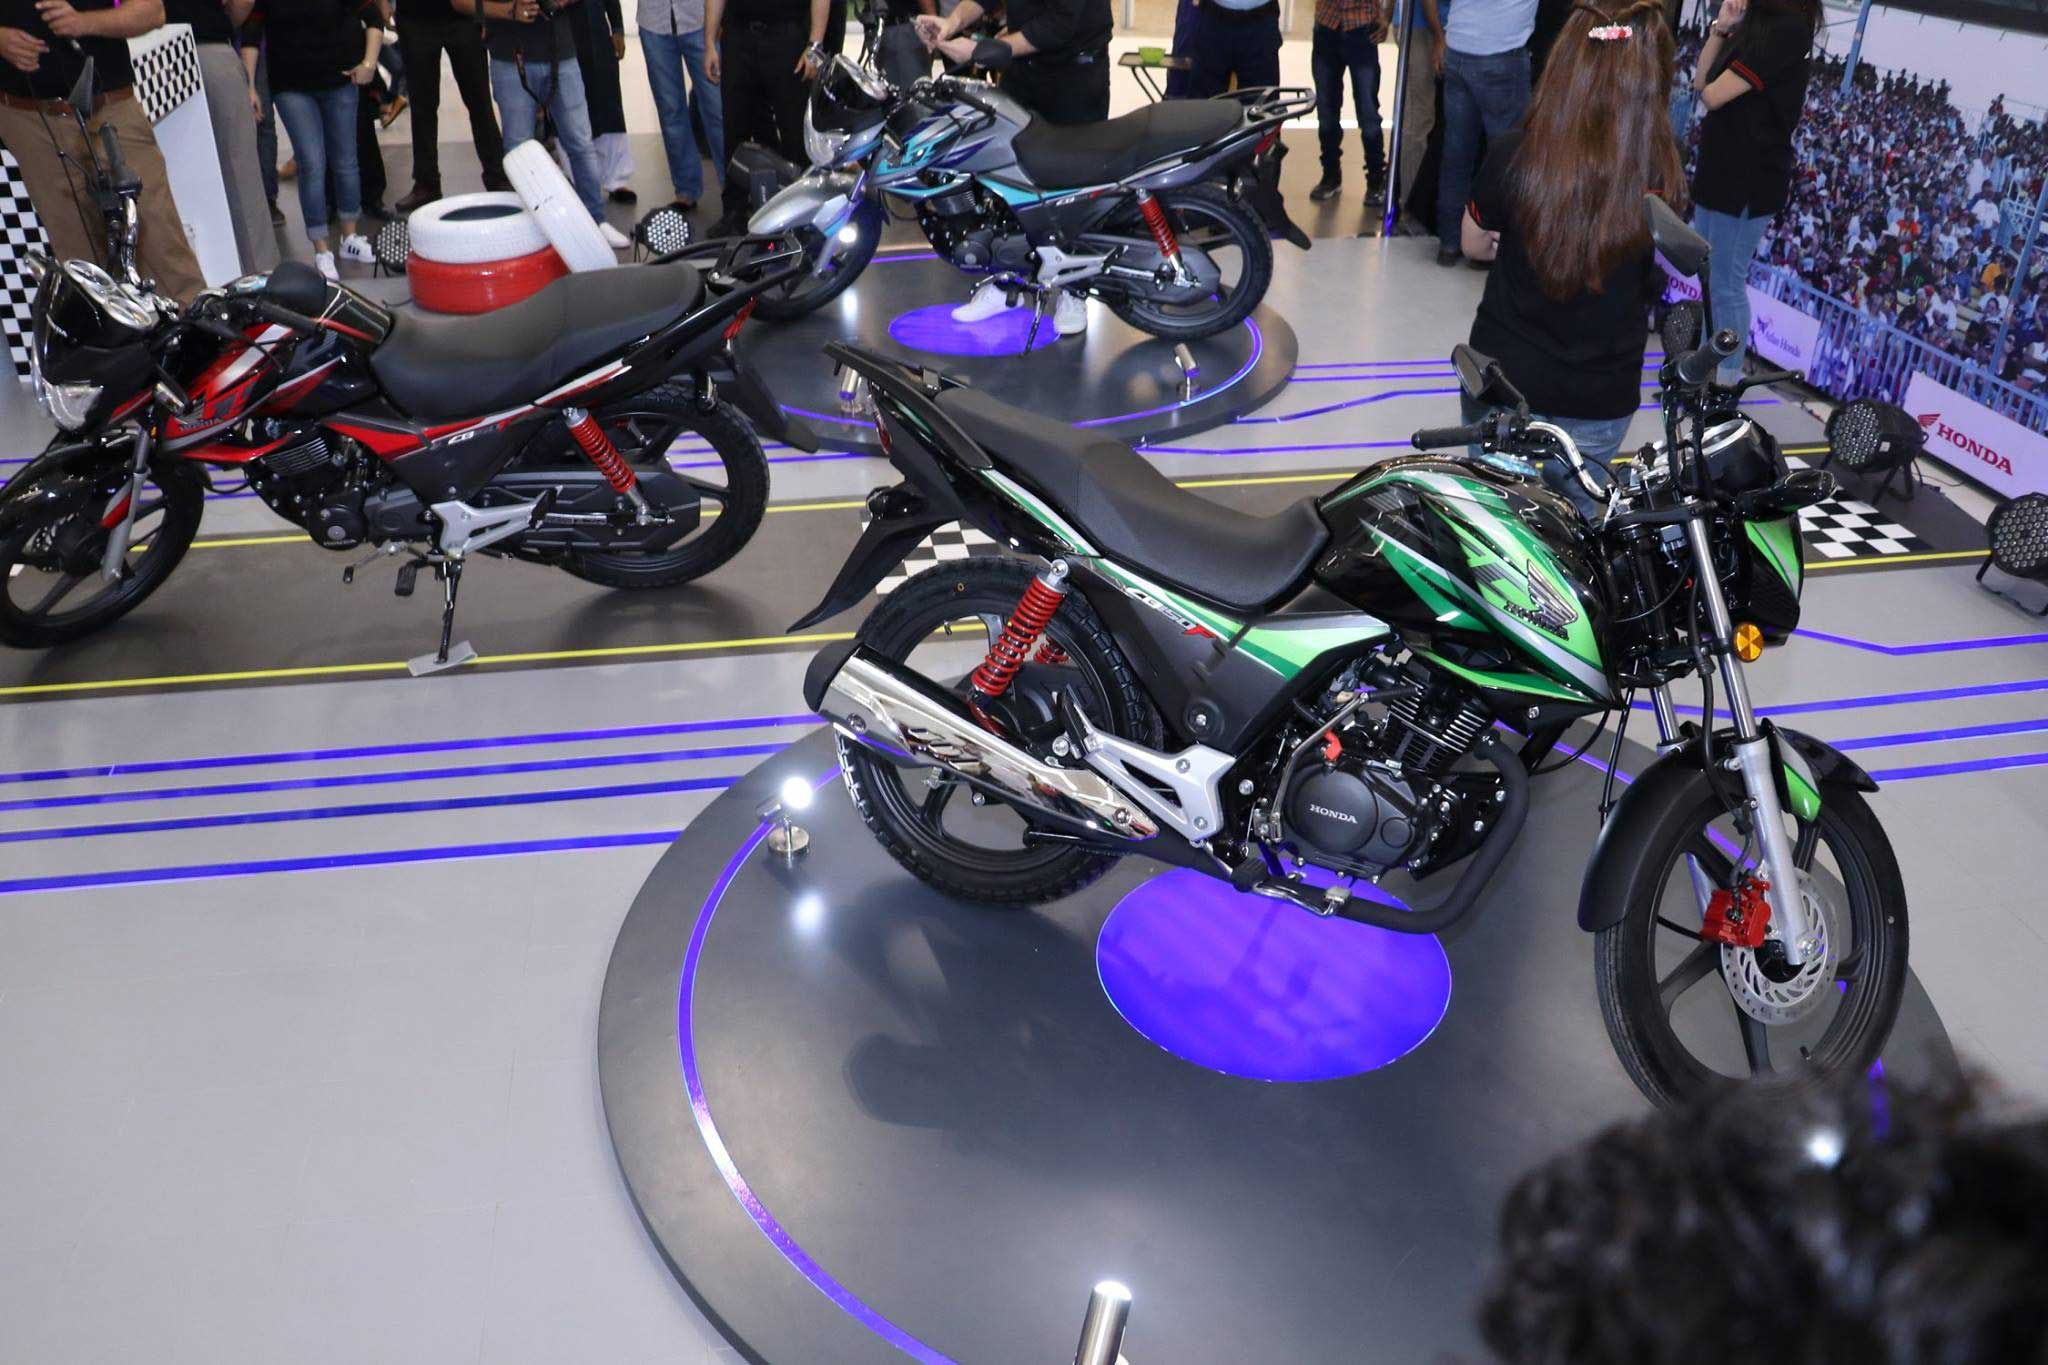 Atlas Honda The Motorcycle Maker In Pakistan Brings New 150cc